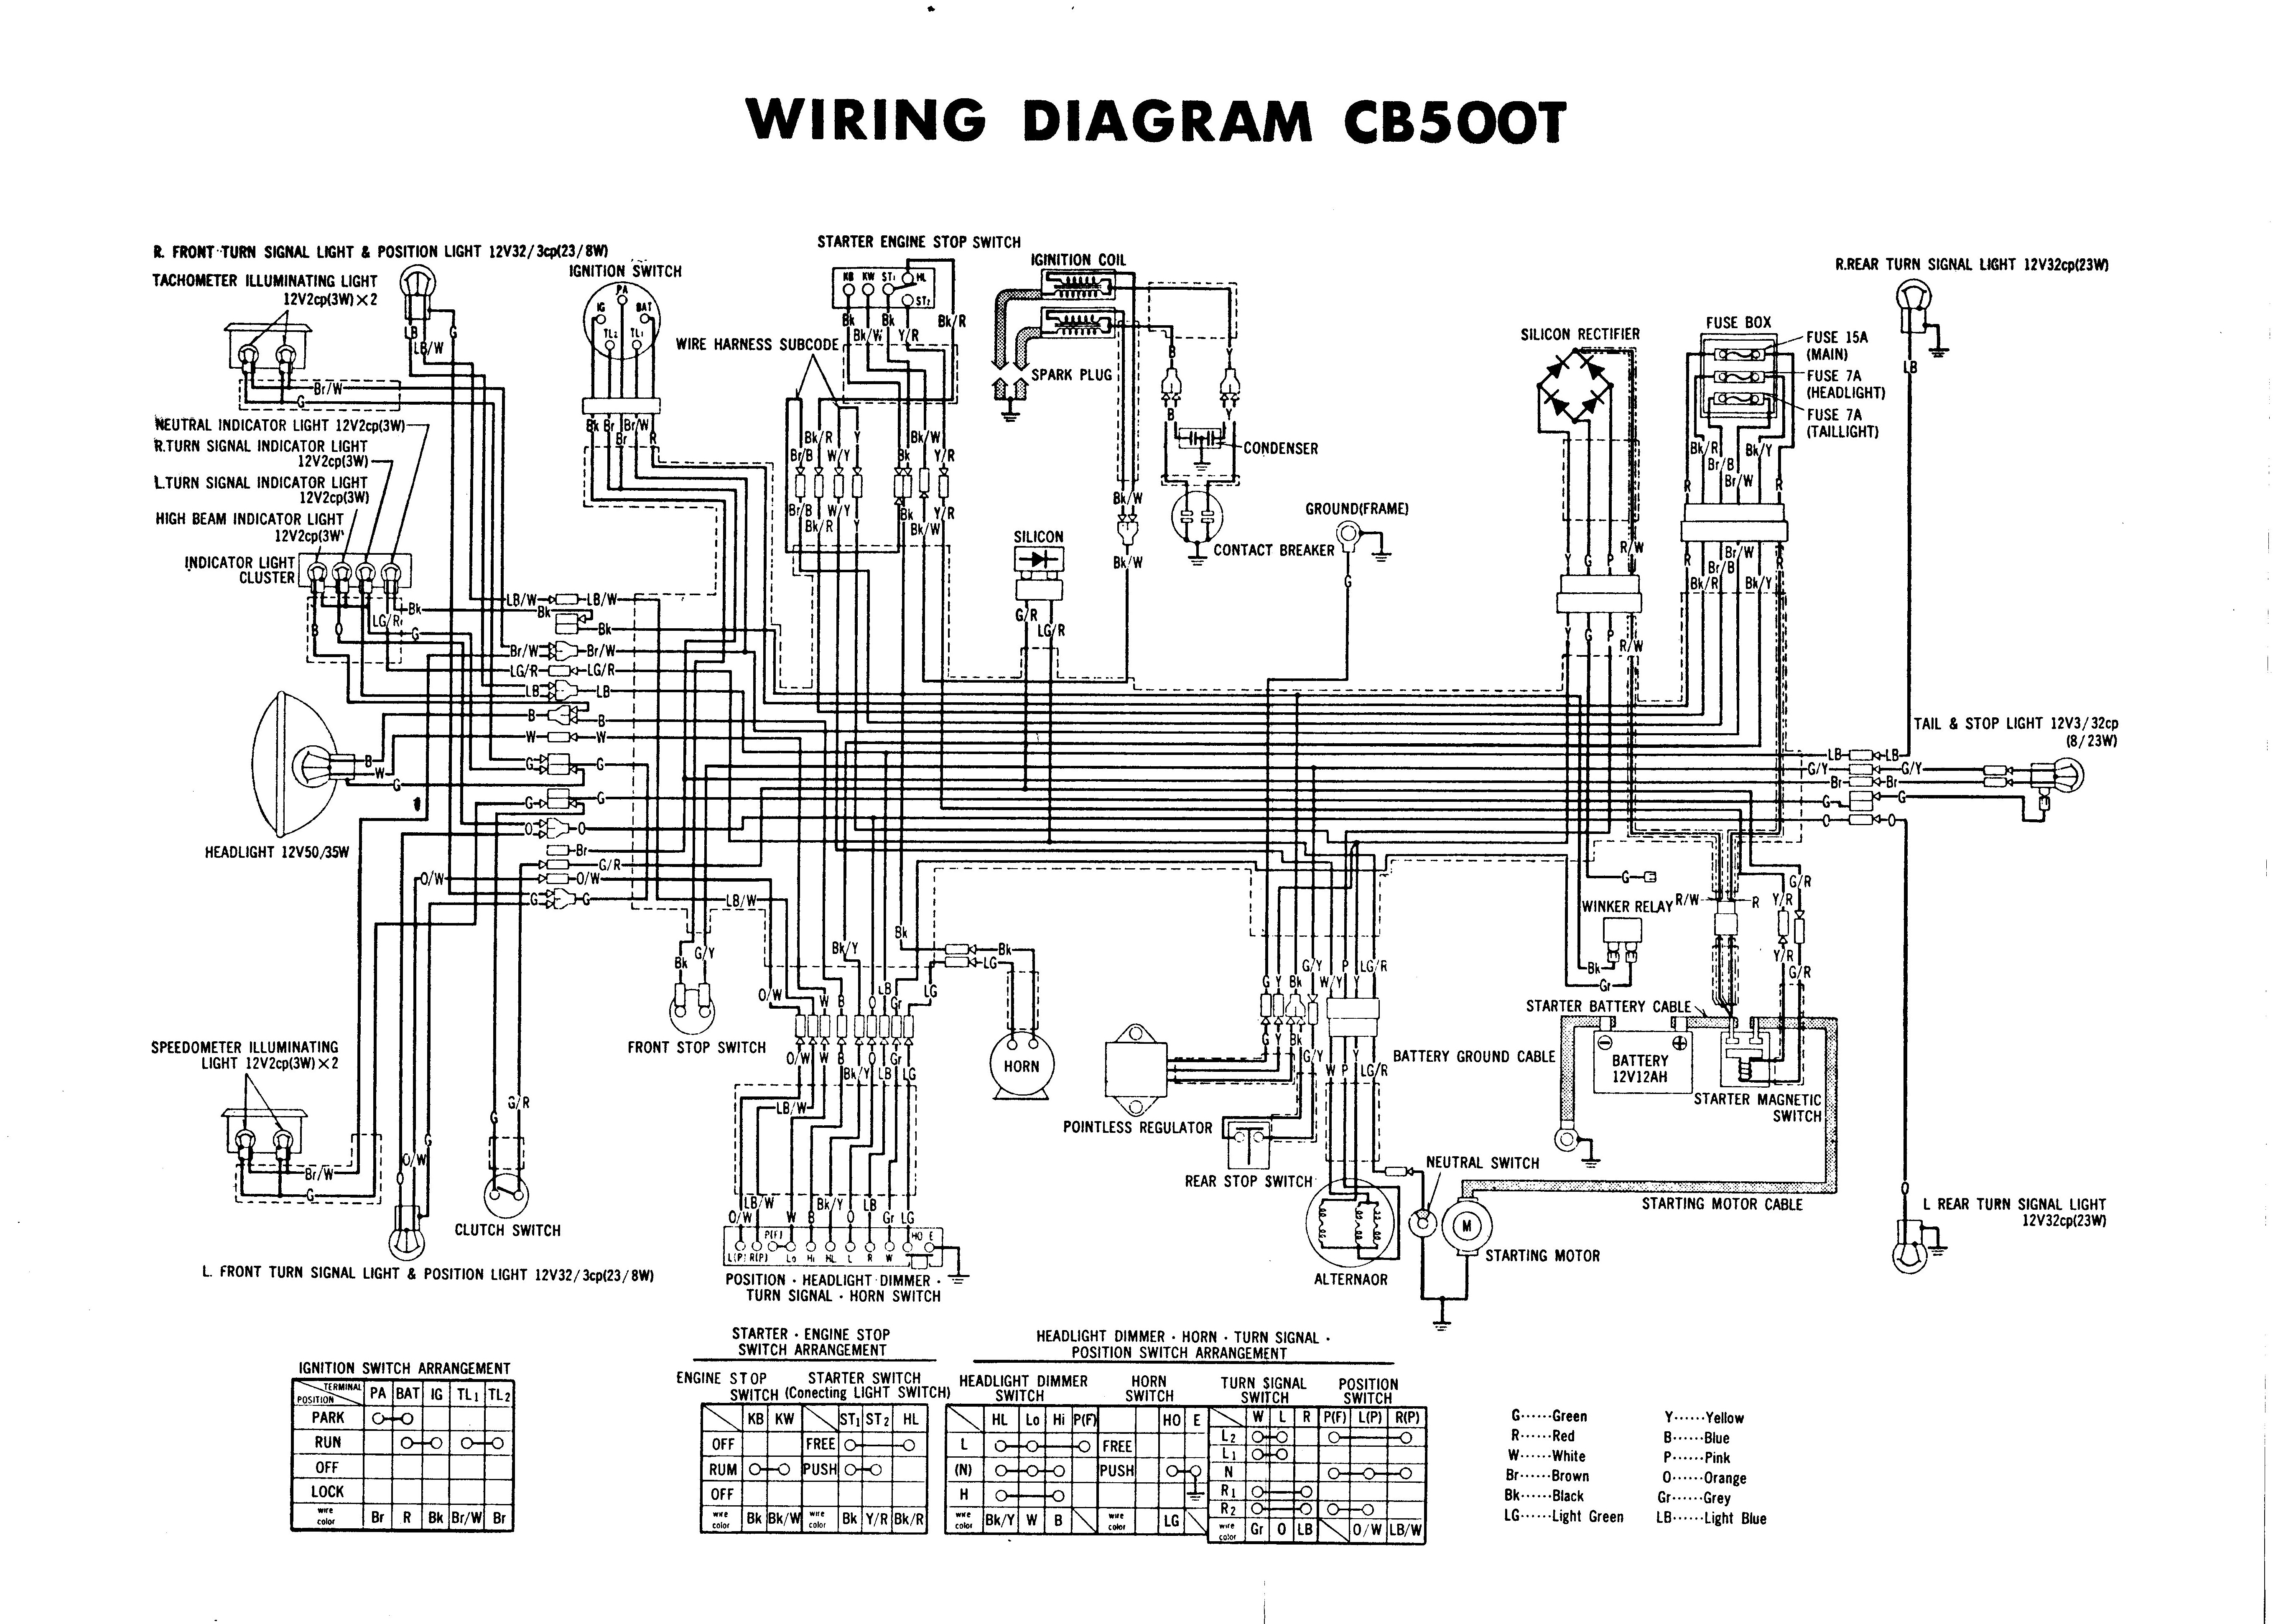 28341d1378261915 76 cb500t wiring diagram cb500t wiring crop 76 cb500t wiring diagram CB Radio Wiring Diagram at alyssarenee.co